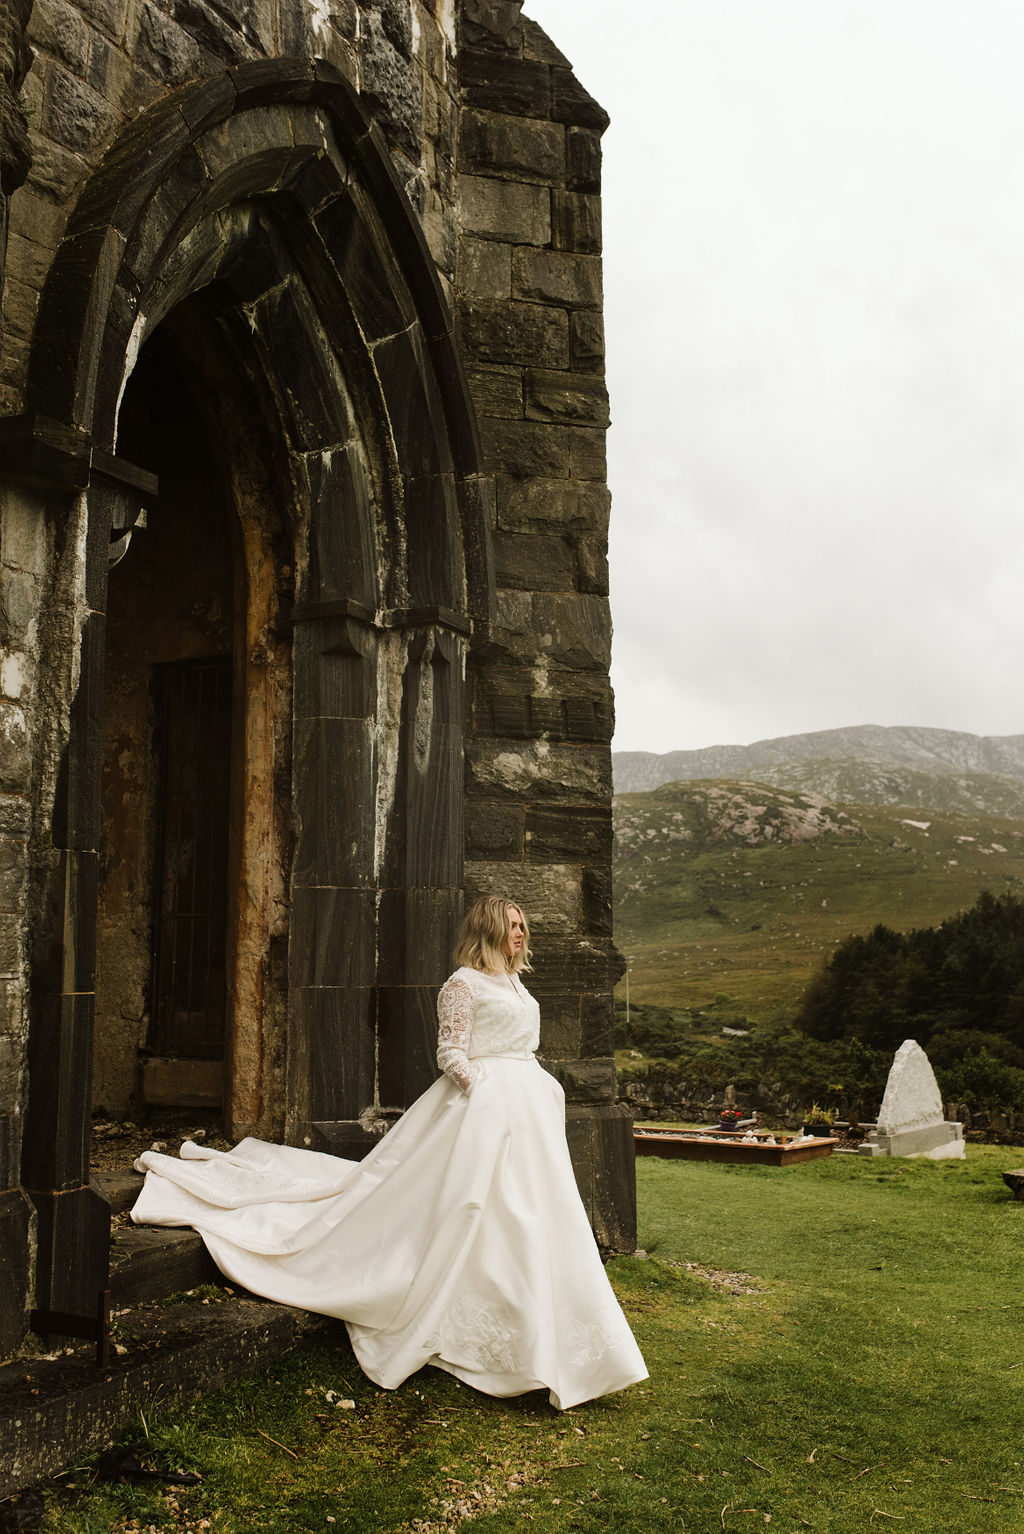 Bride walking out of the doorway of abandoned church with her hands in the pockets of her mikado ballgown wedding dress and lace bomber jacket at Dunlewey Church in Ireland